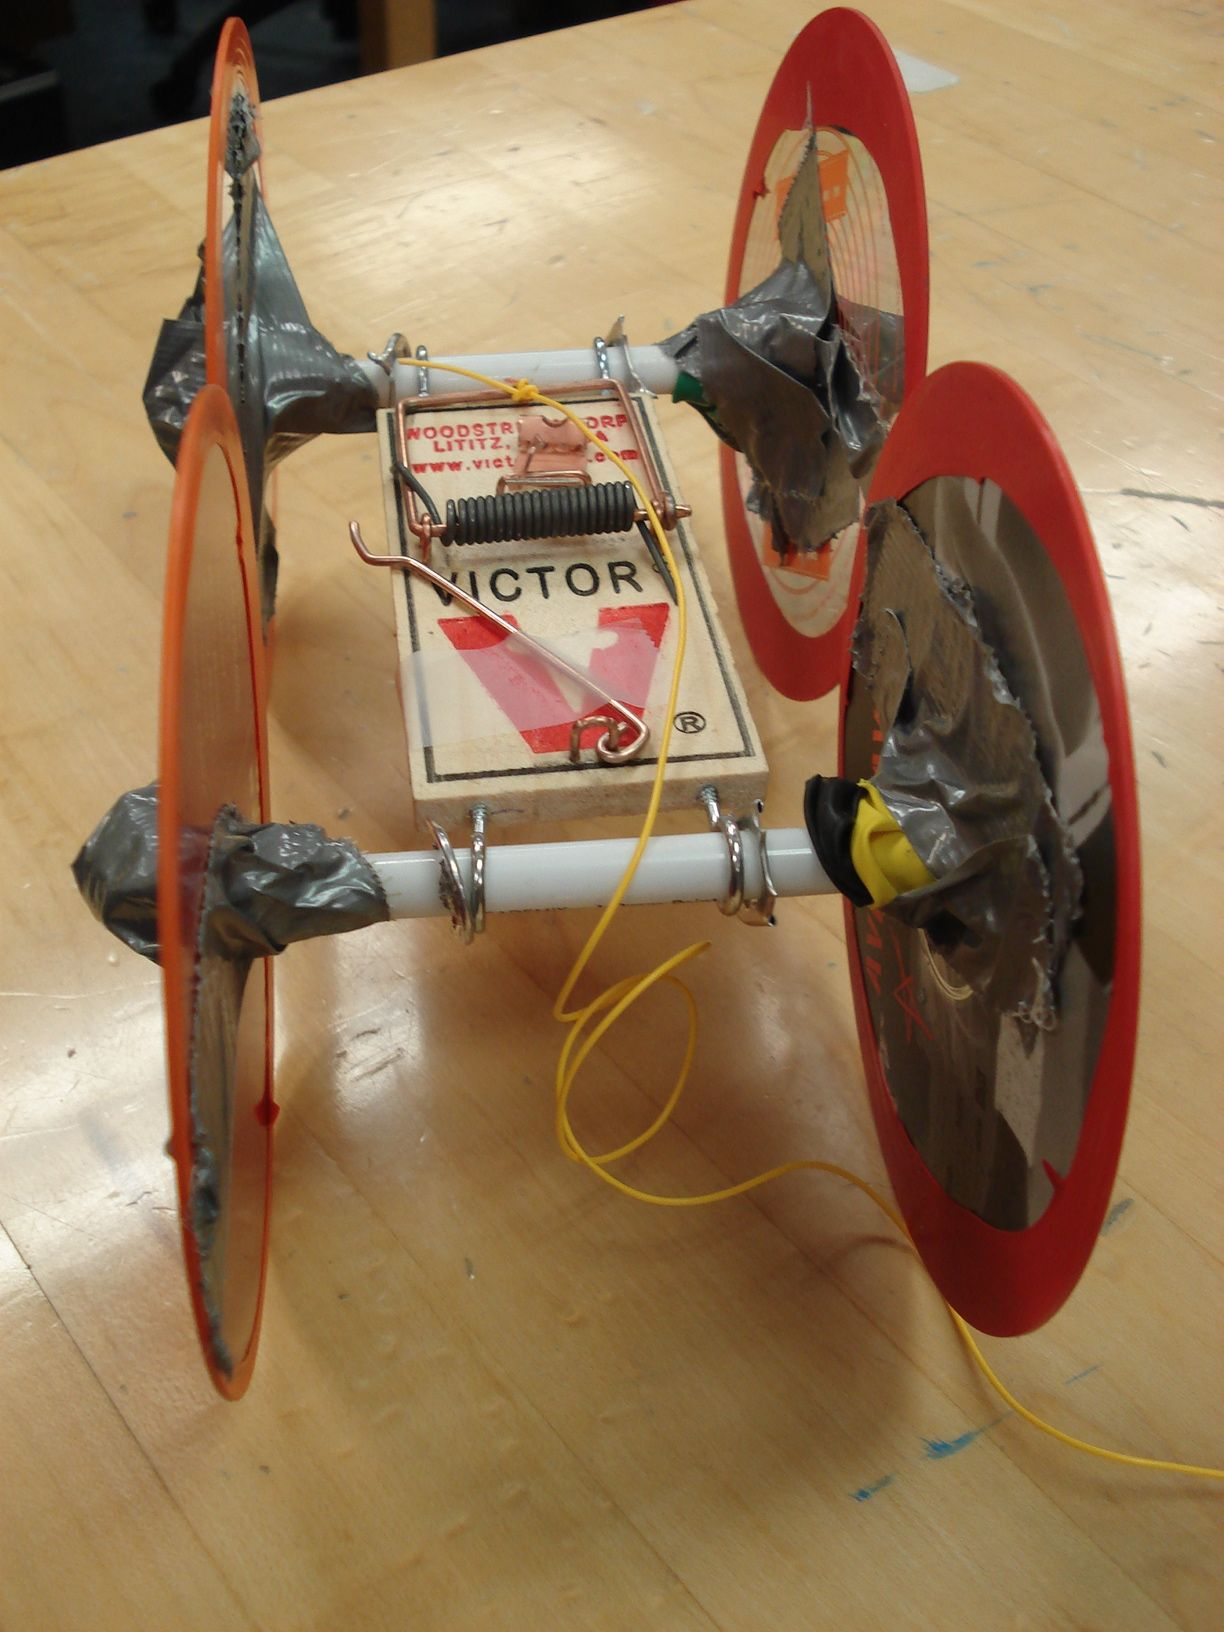 the mousetrap car i had to make for physics stem mousetrap car the mousetrap car i had to make for physics